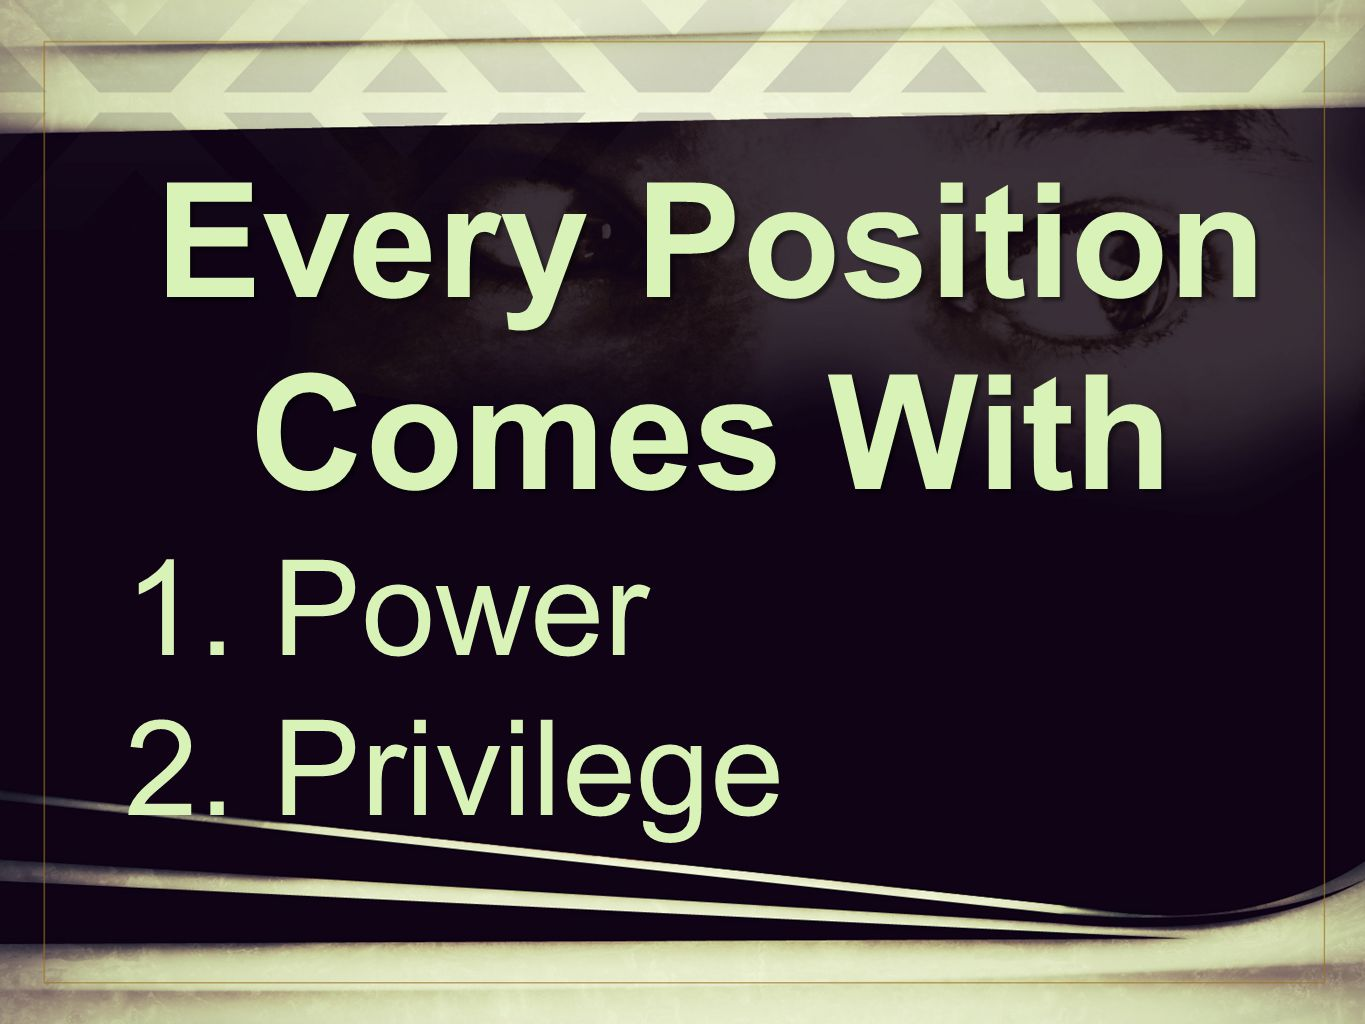 Every Position Comes With 1. Power 2. Privilege